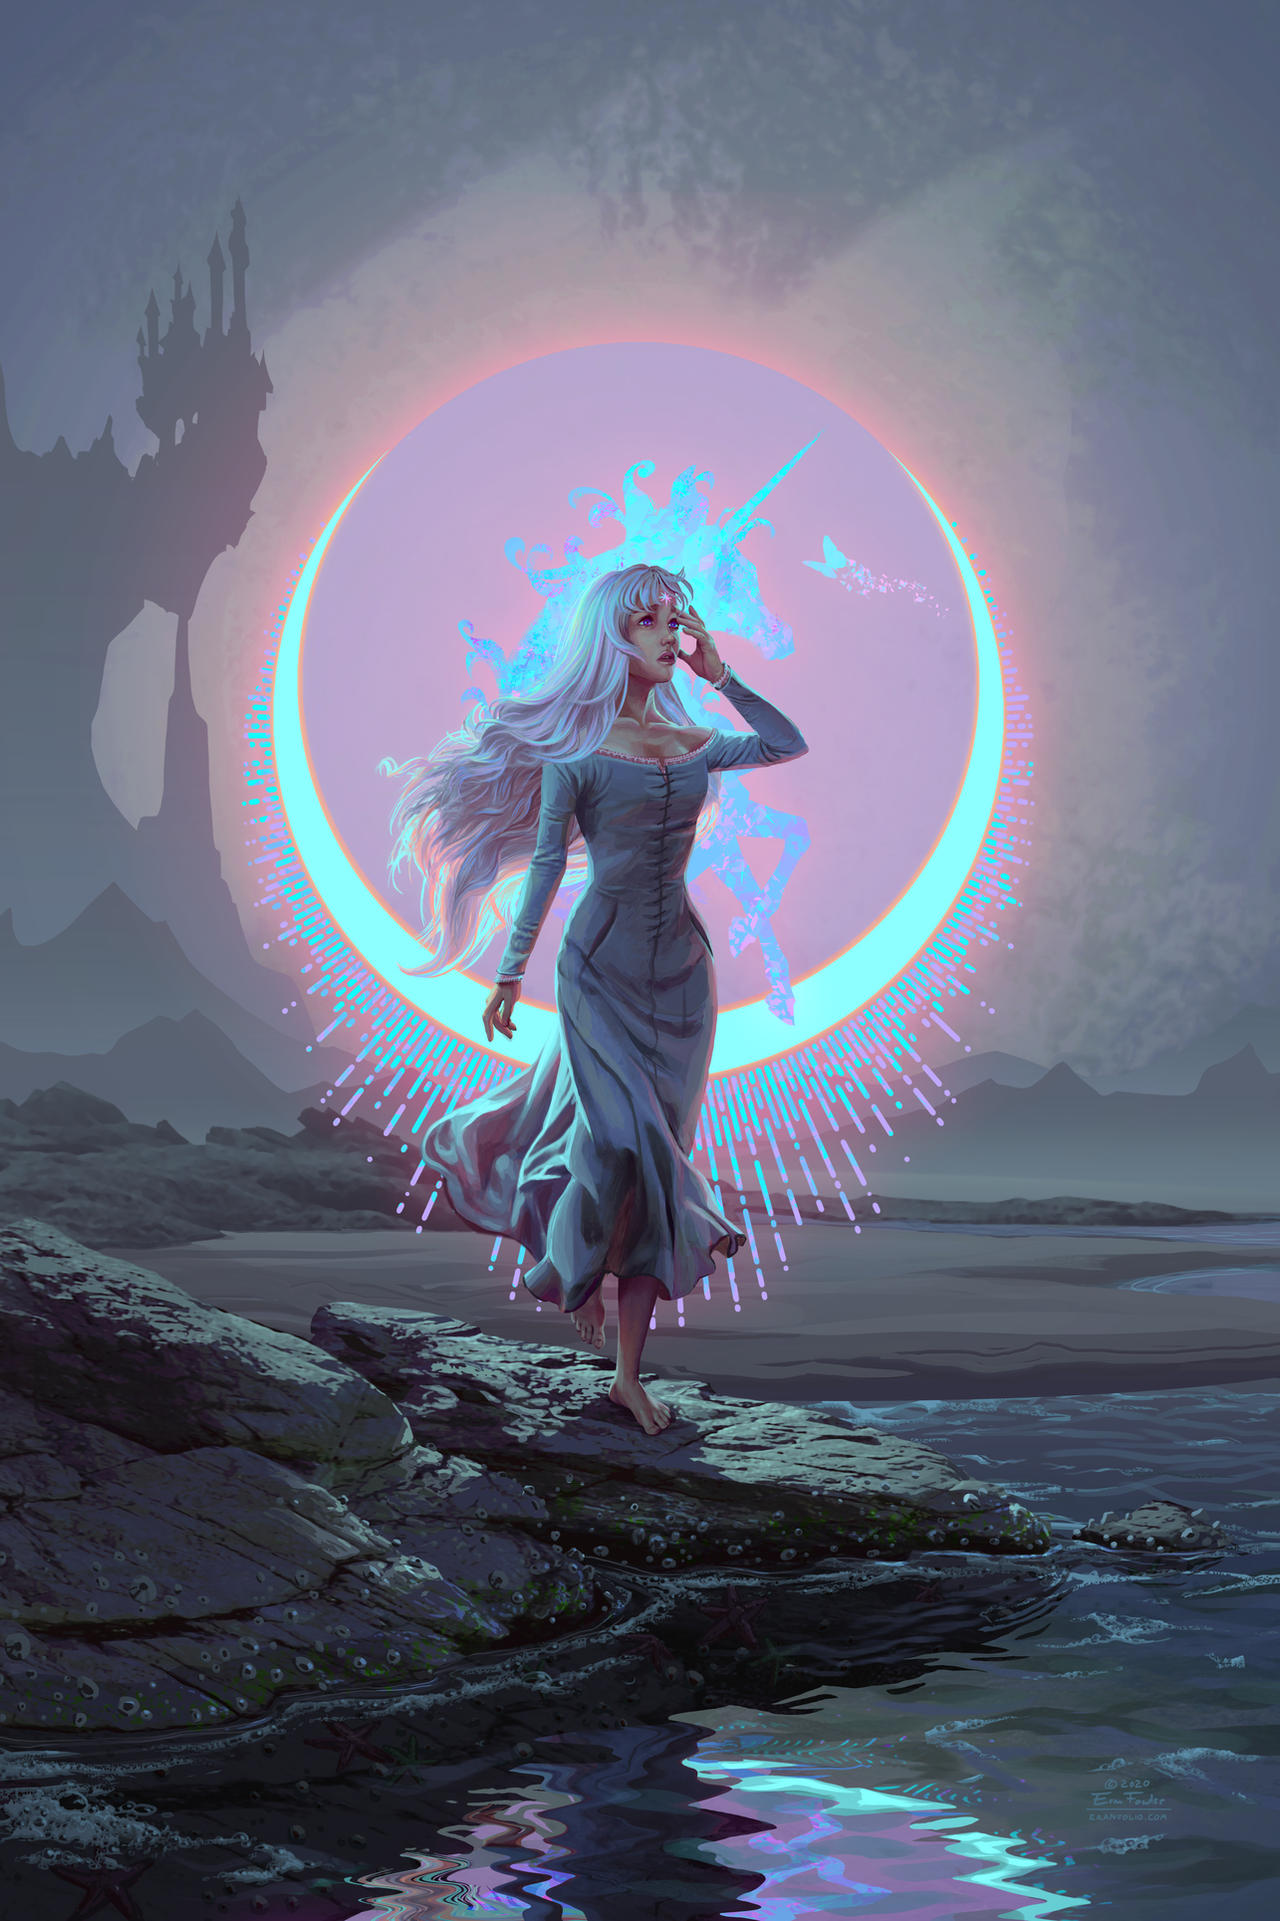 The Lady Amalthea